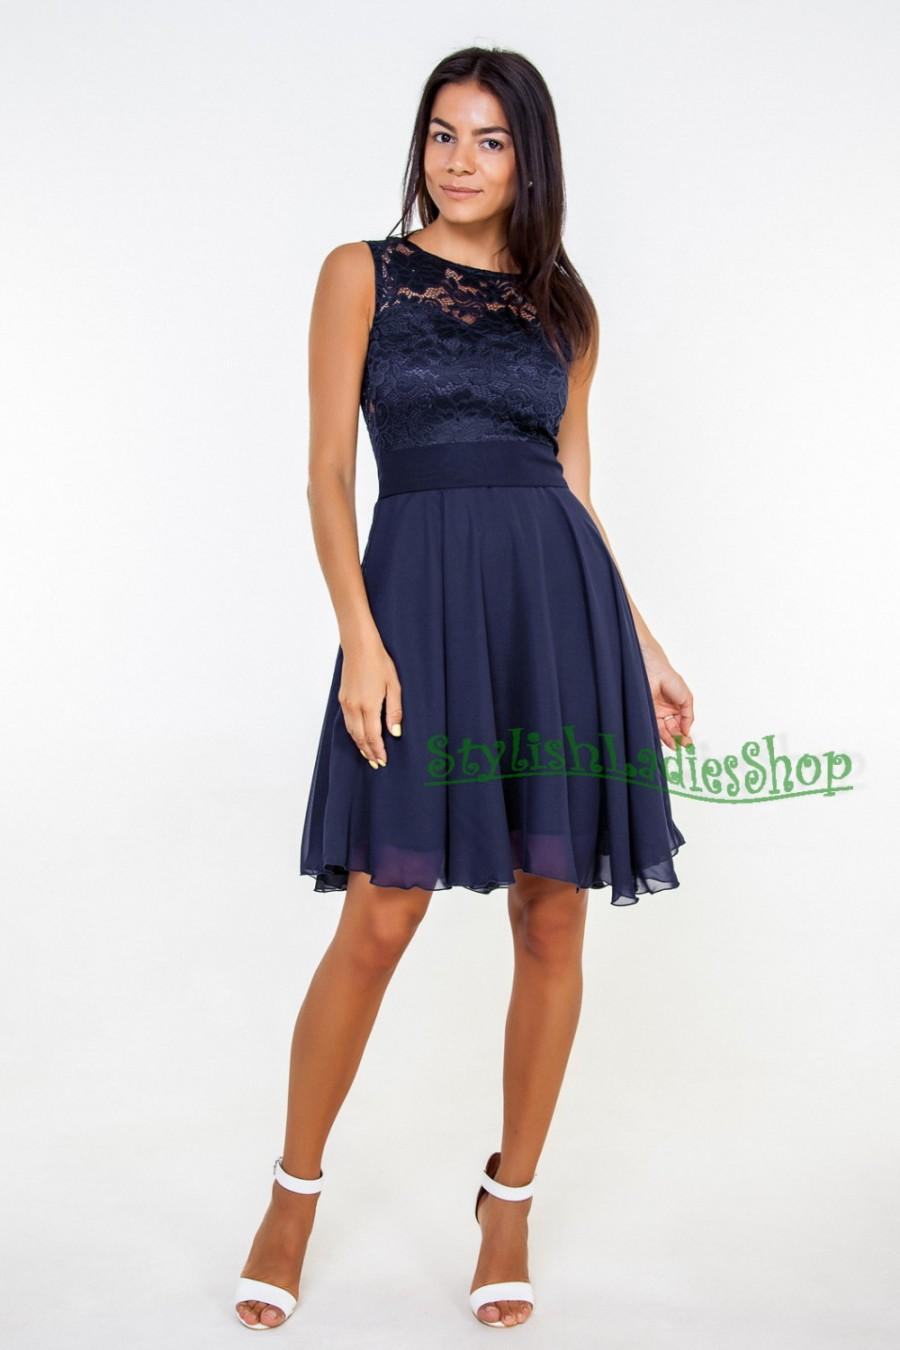 Navy Blue Bridesmaid Dress Lace Short Chiffon Dark Bridesmaids